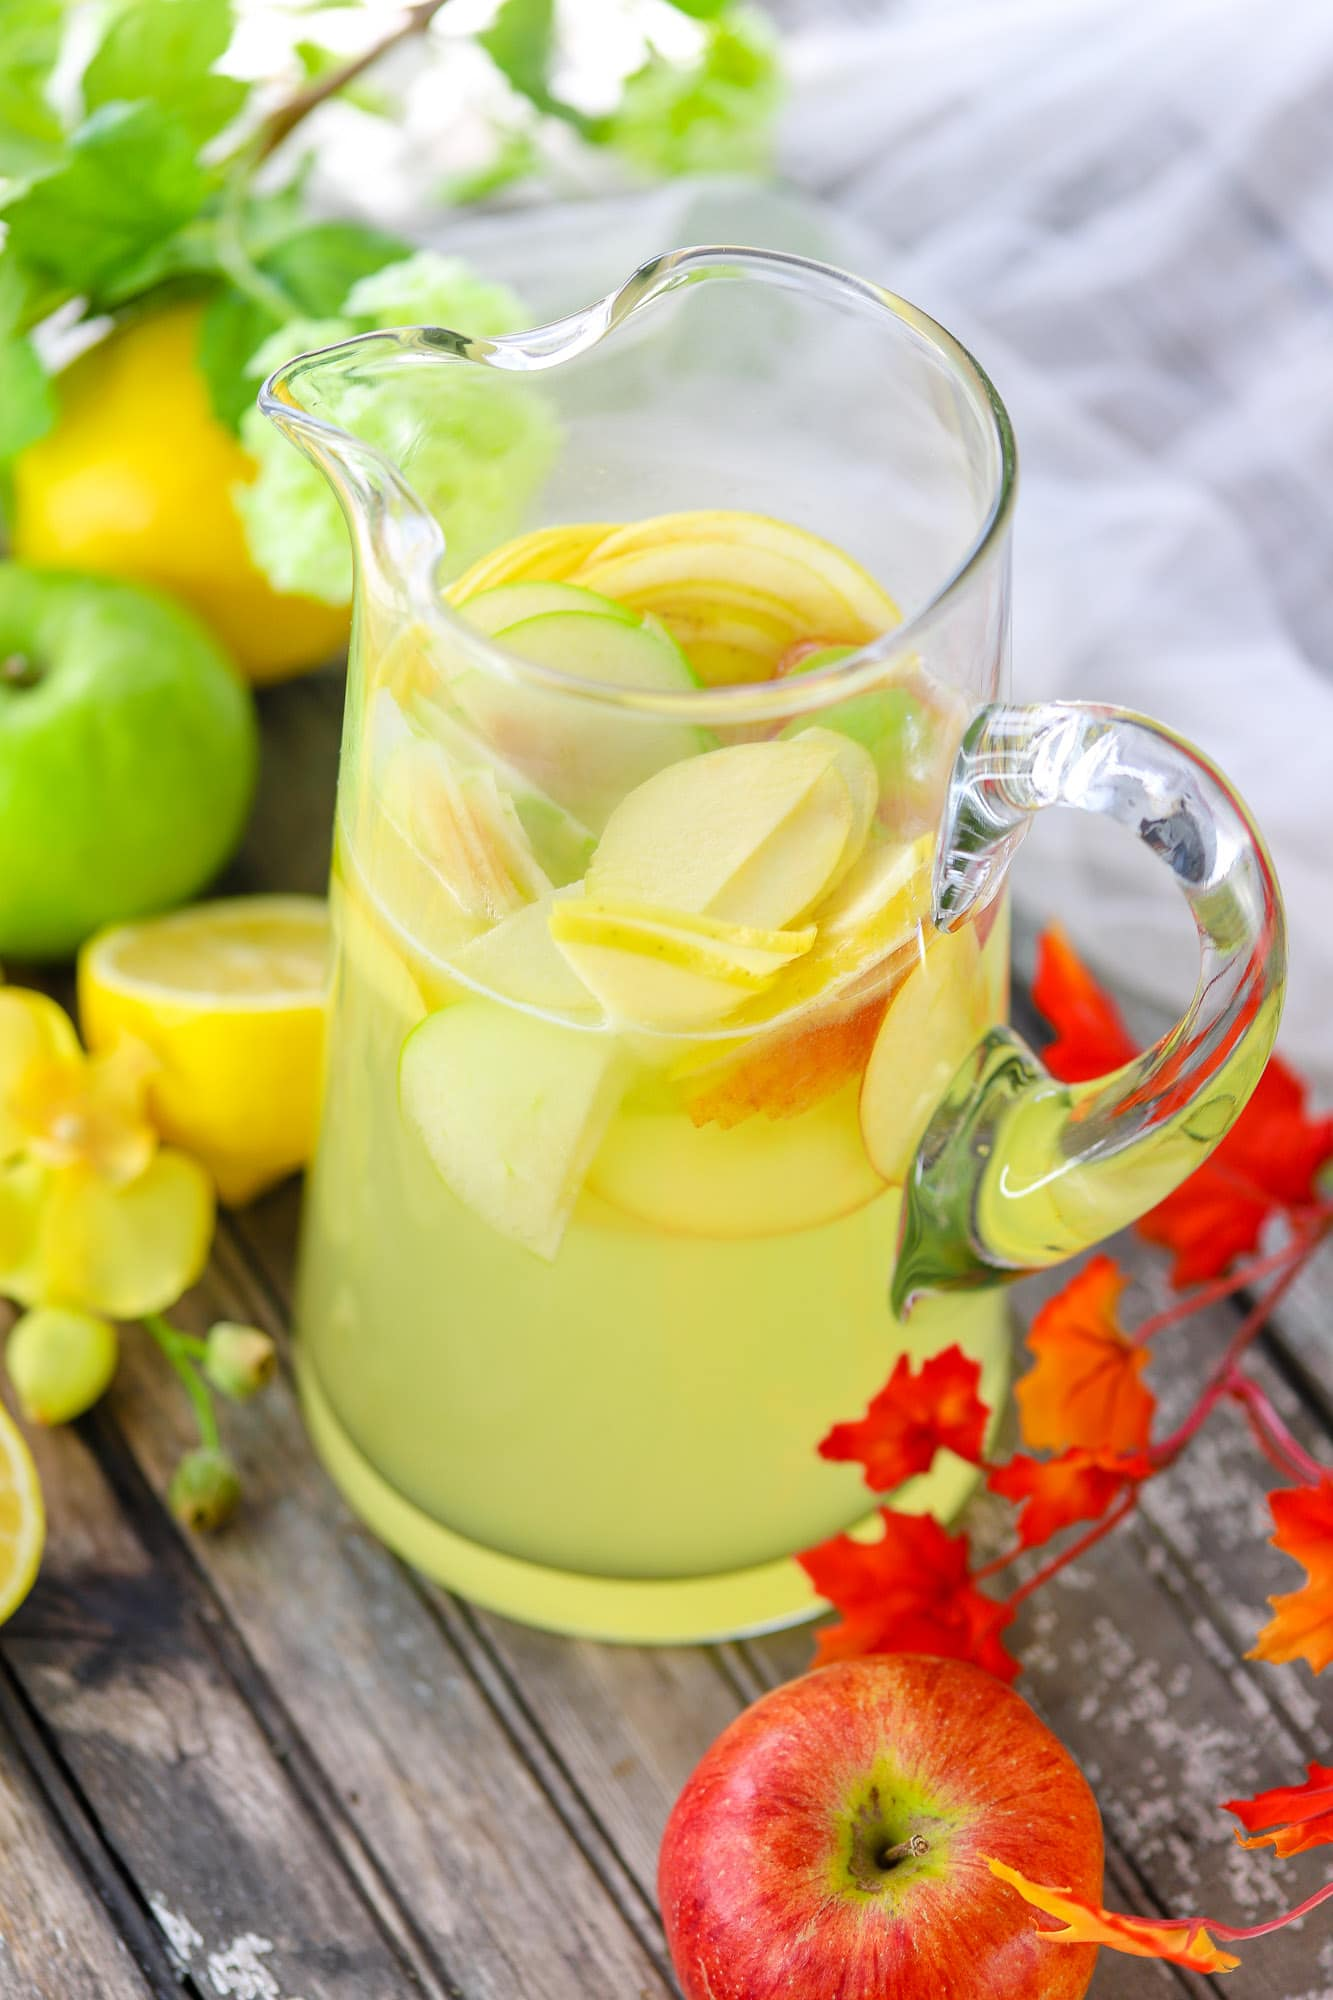 clear glass pitcher full of lemonade and apple slices surrounded by apples and lemons